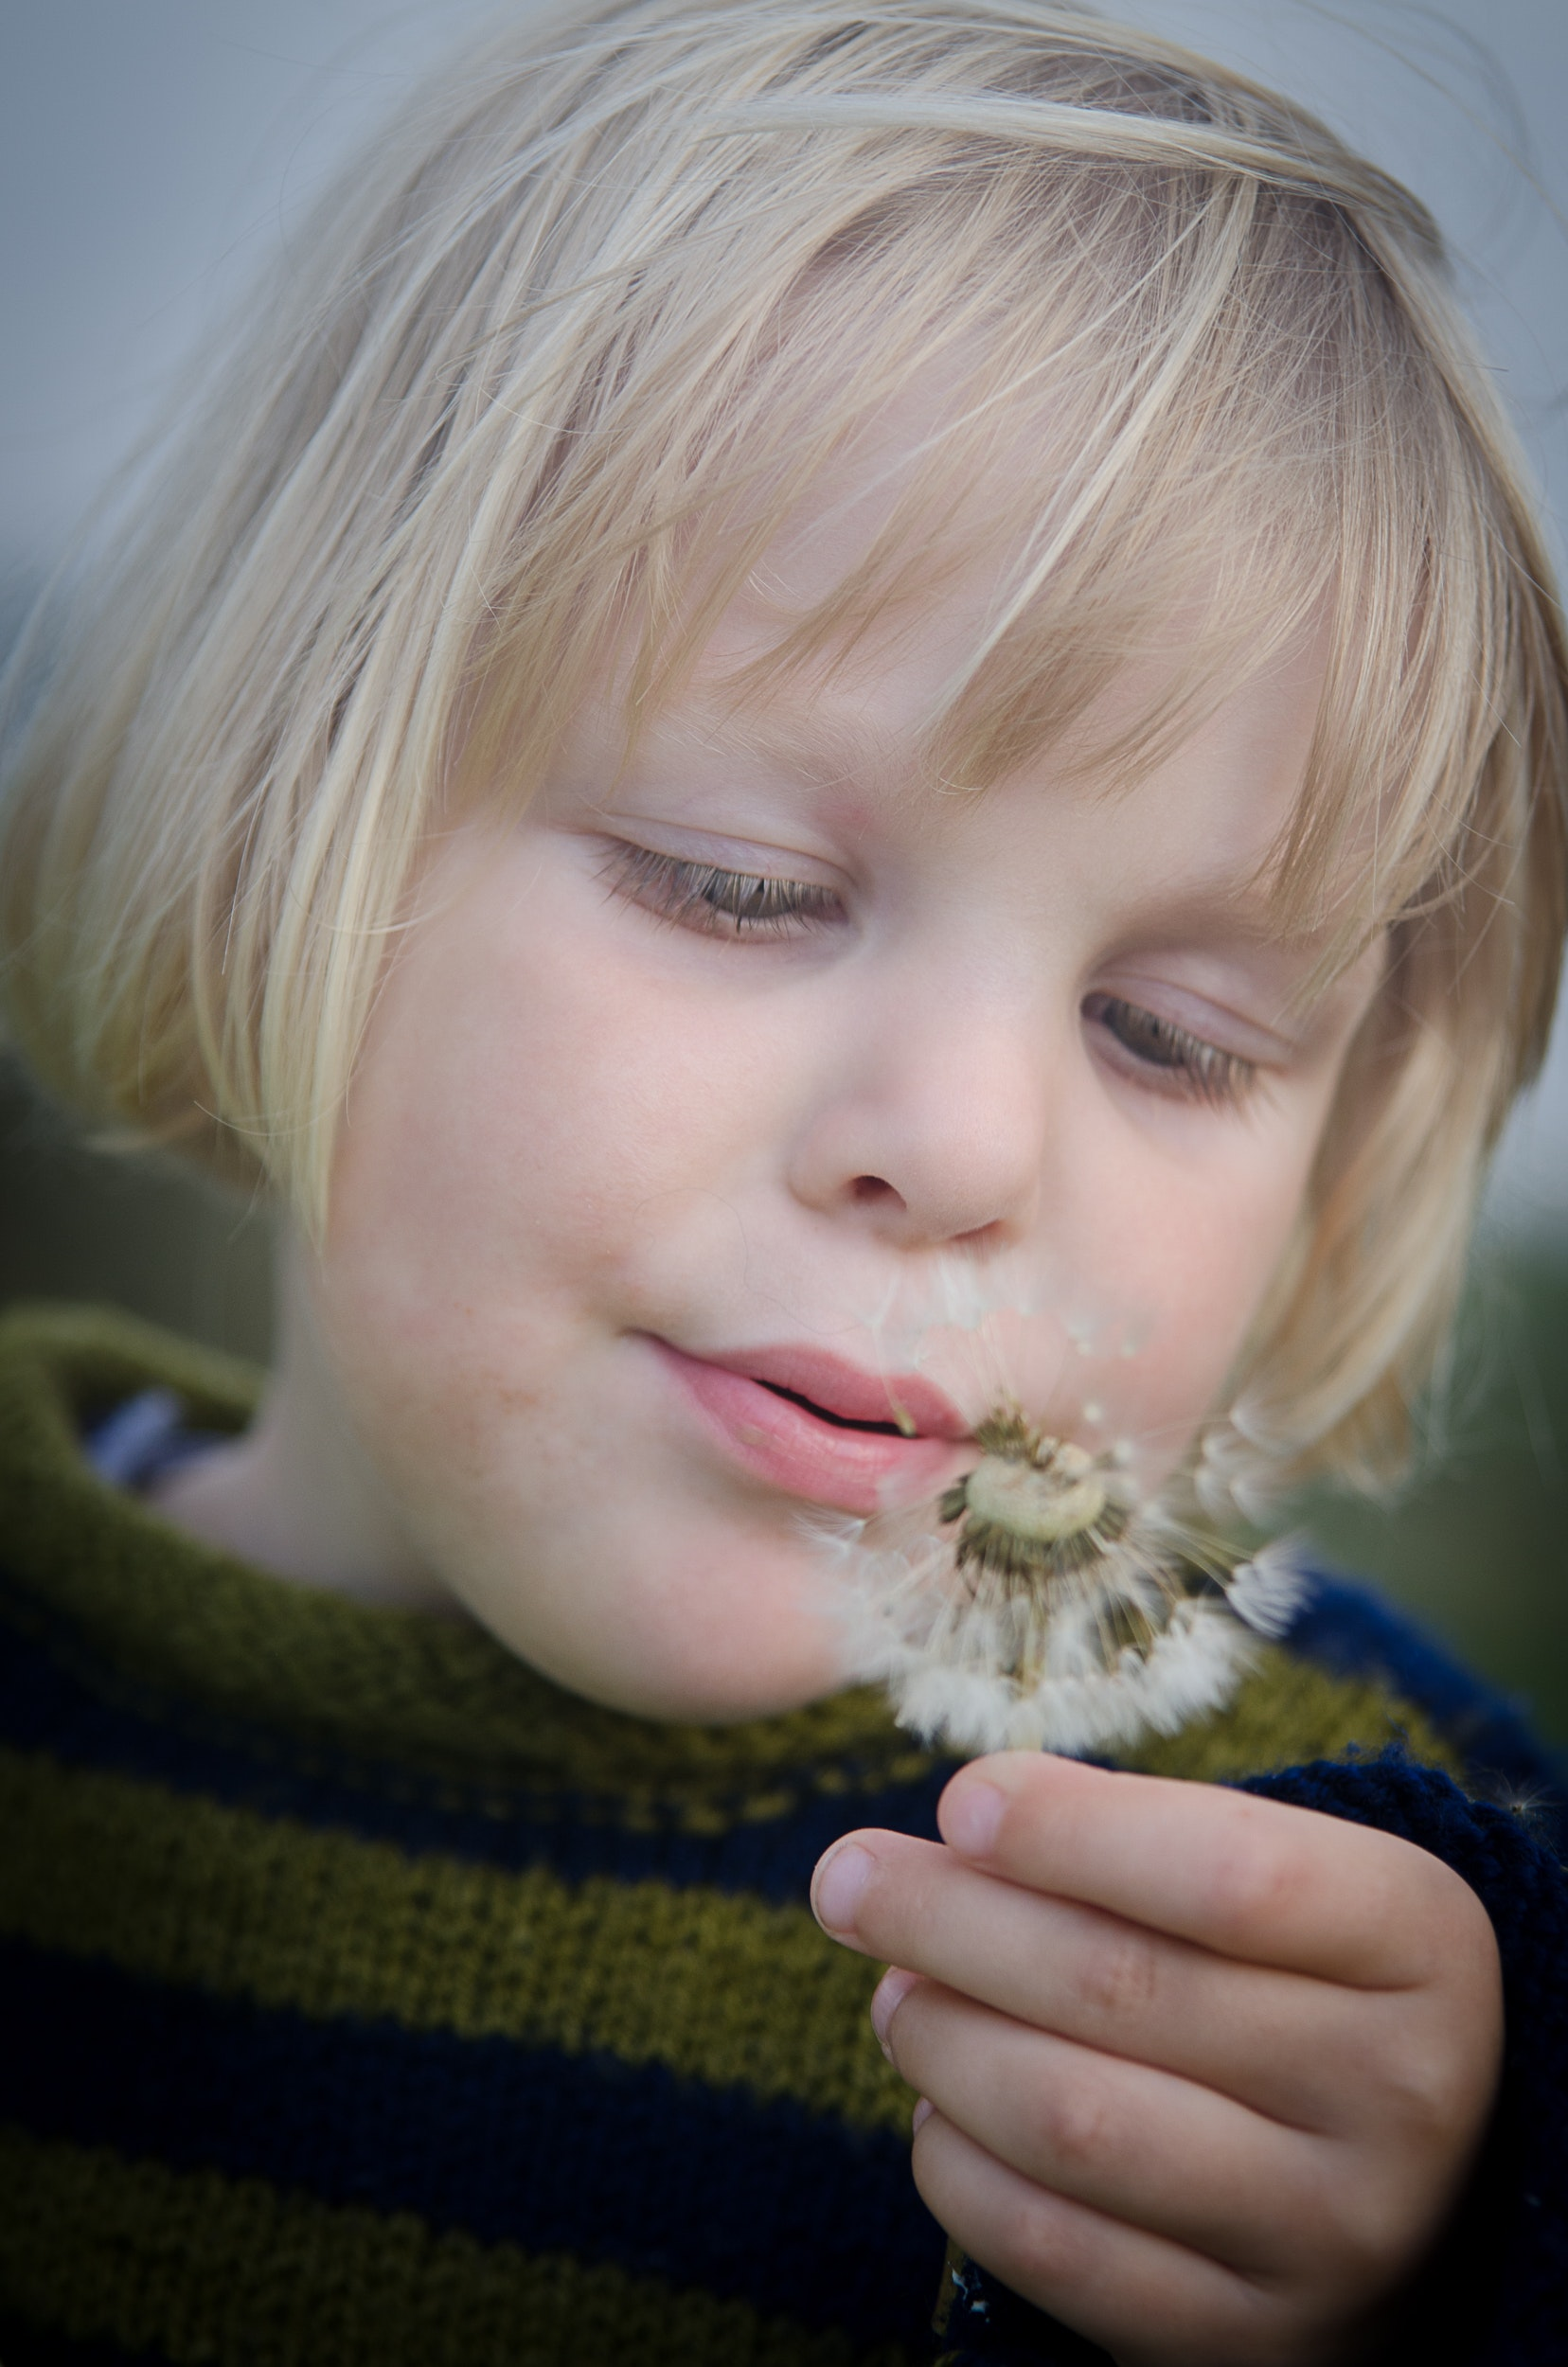 Selective Focus Photography of Girl in Green and Black Striped Sweater Holding and Blowing Dandelion, Adorable, Hand, Toddler, Summer, HQ Photo